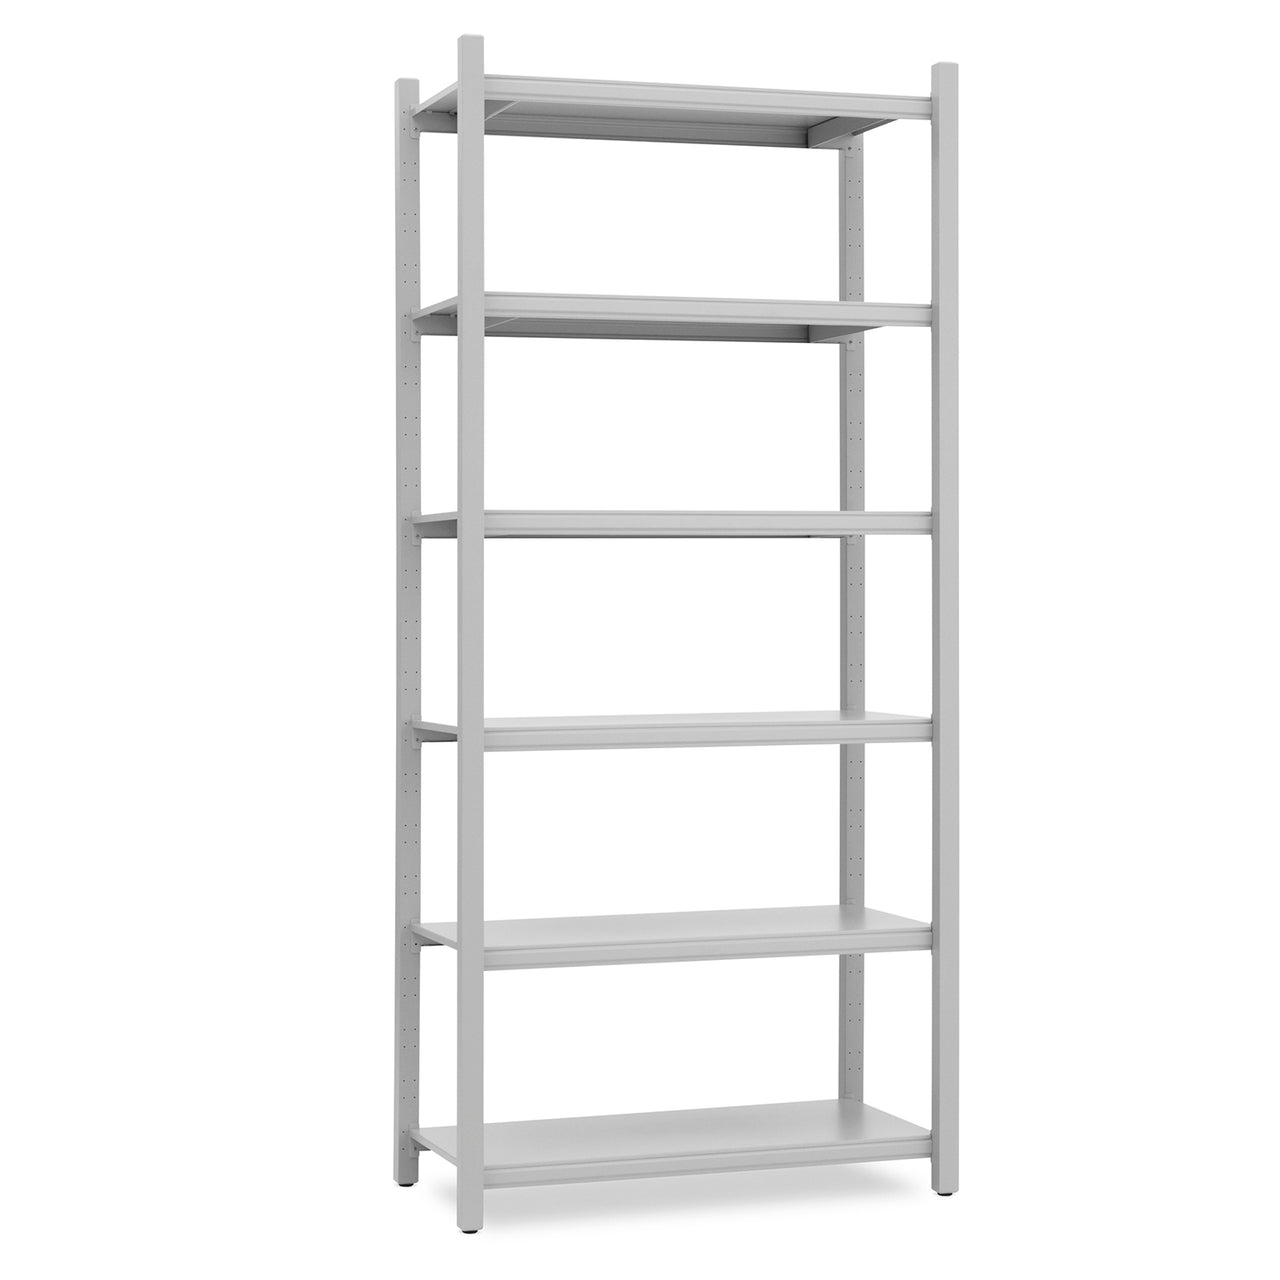 Work Bookcase: High + 4 Pillar + Grey